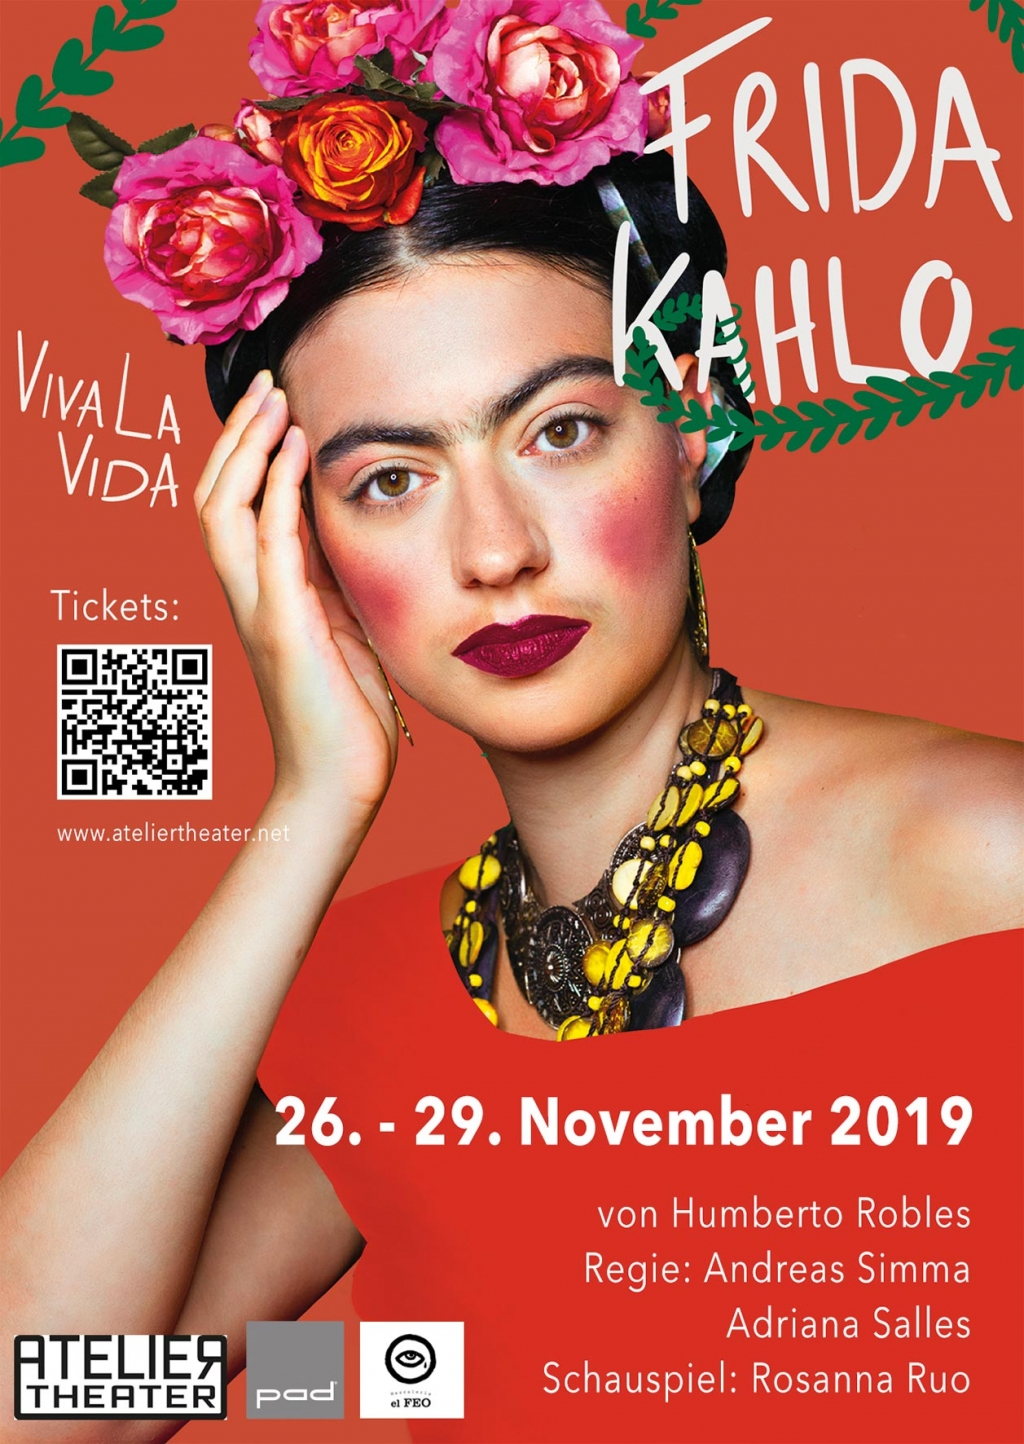 Theater mit Frida Kahlo!